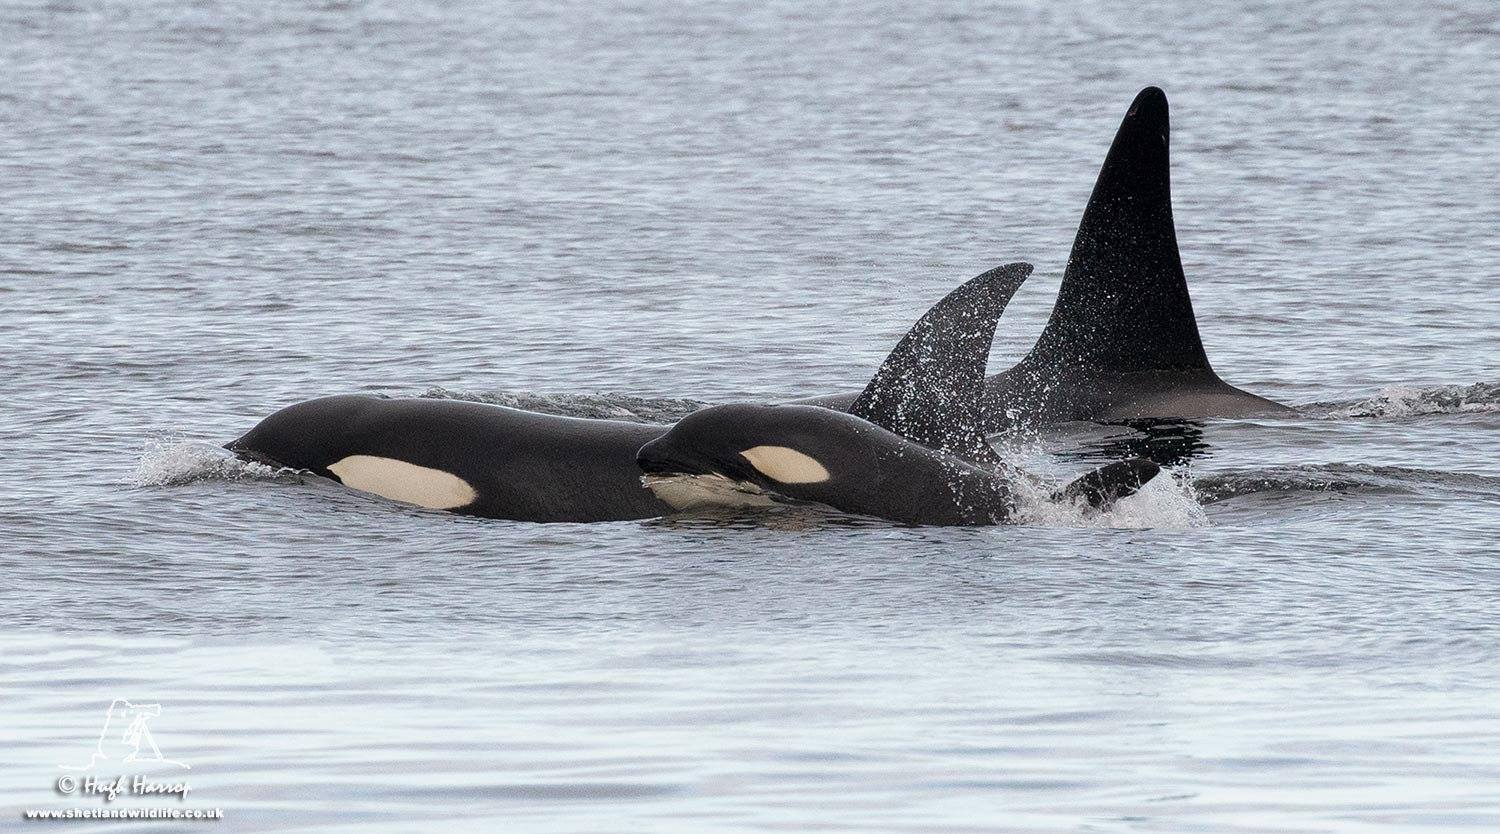 Orcas in Shetland - photo by Hugh Harrop / Shetland Wildlife